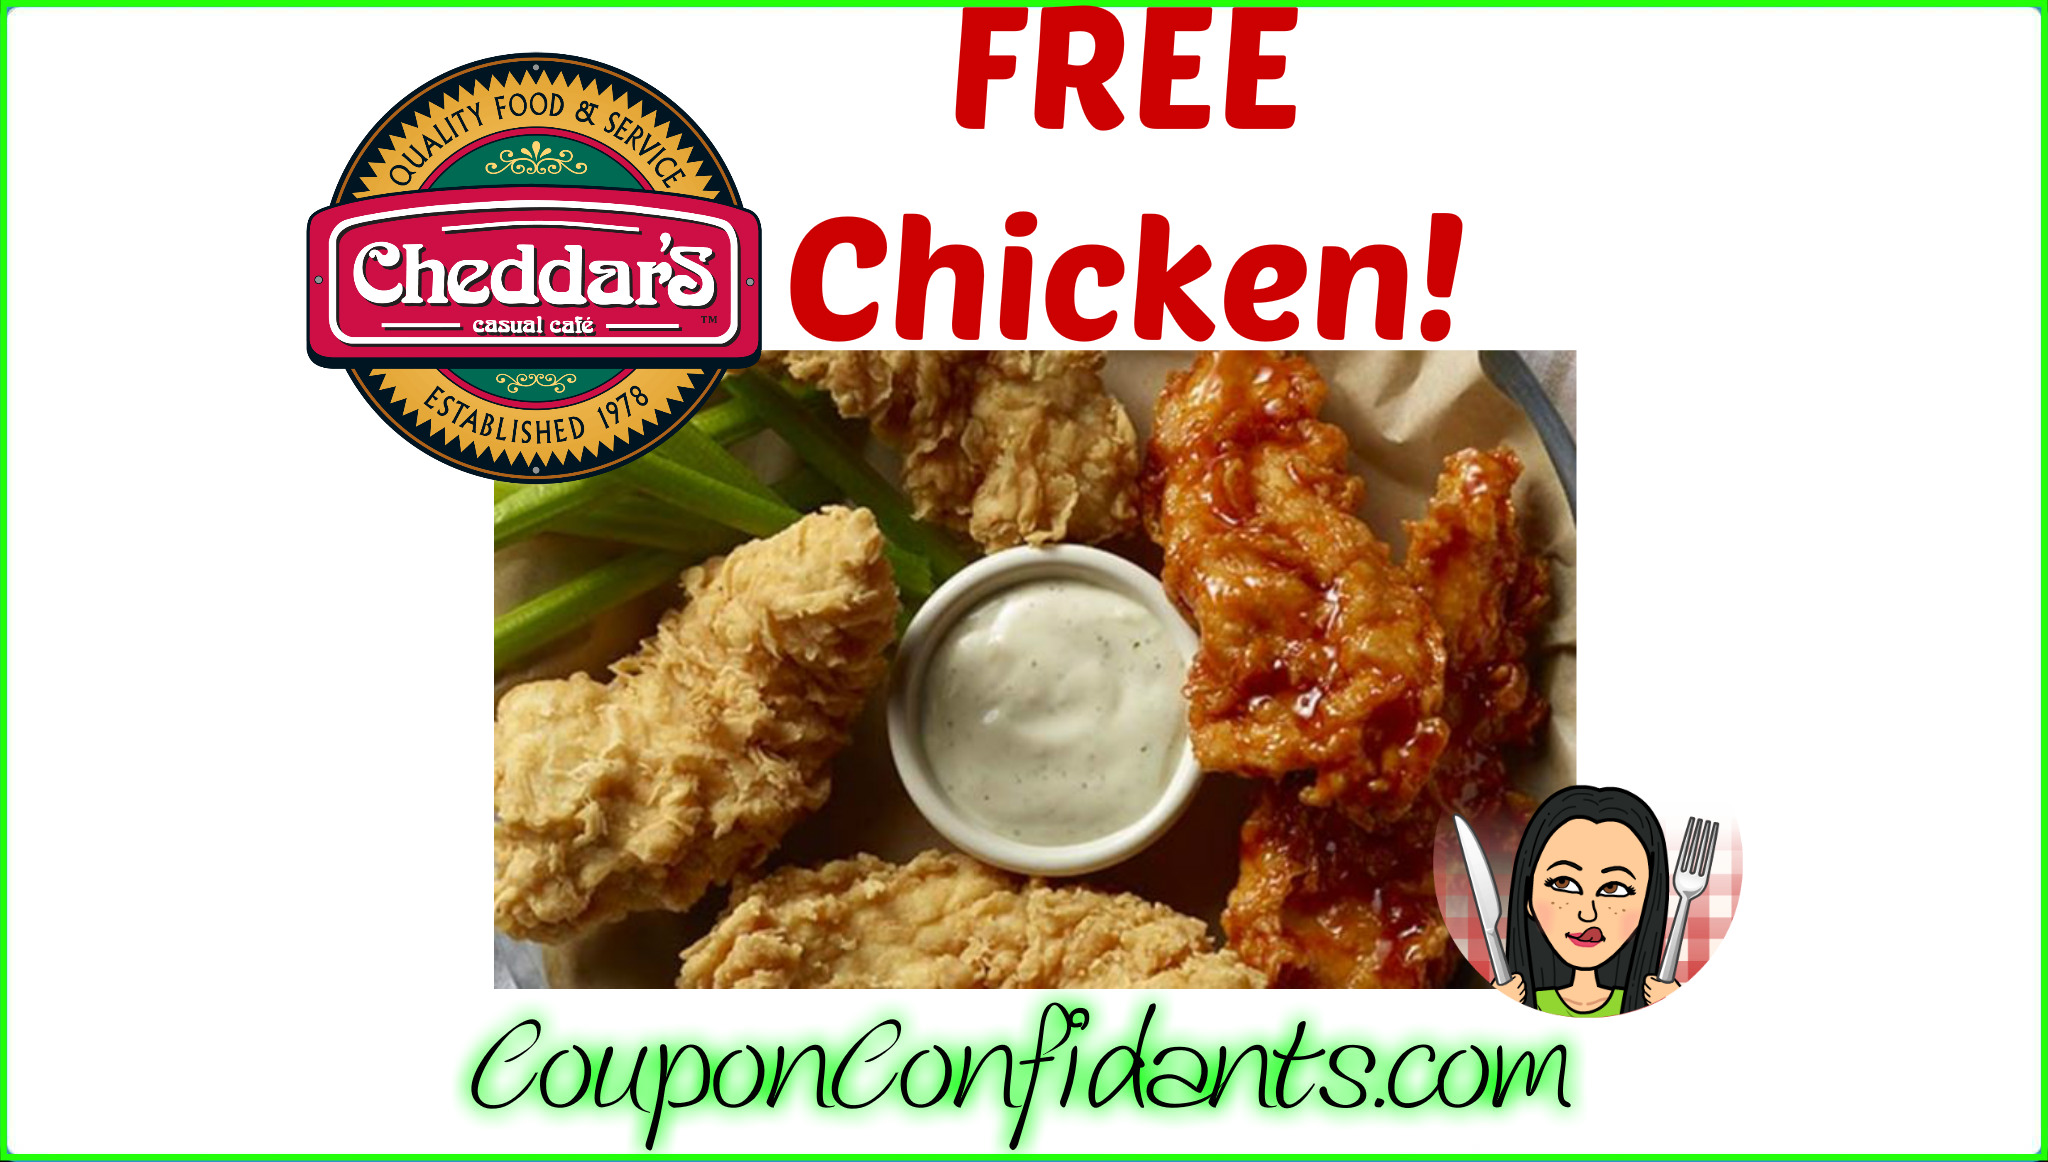 photograph about Cheddars Printable Coupons identify Free of charge 5 piece at Cheddars Cafe upon us! :) ⋆ Coupon